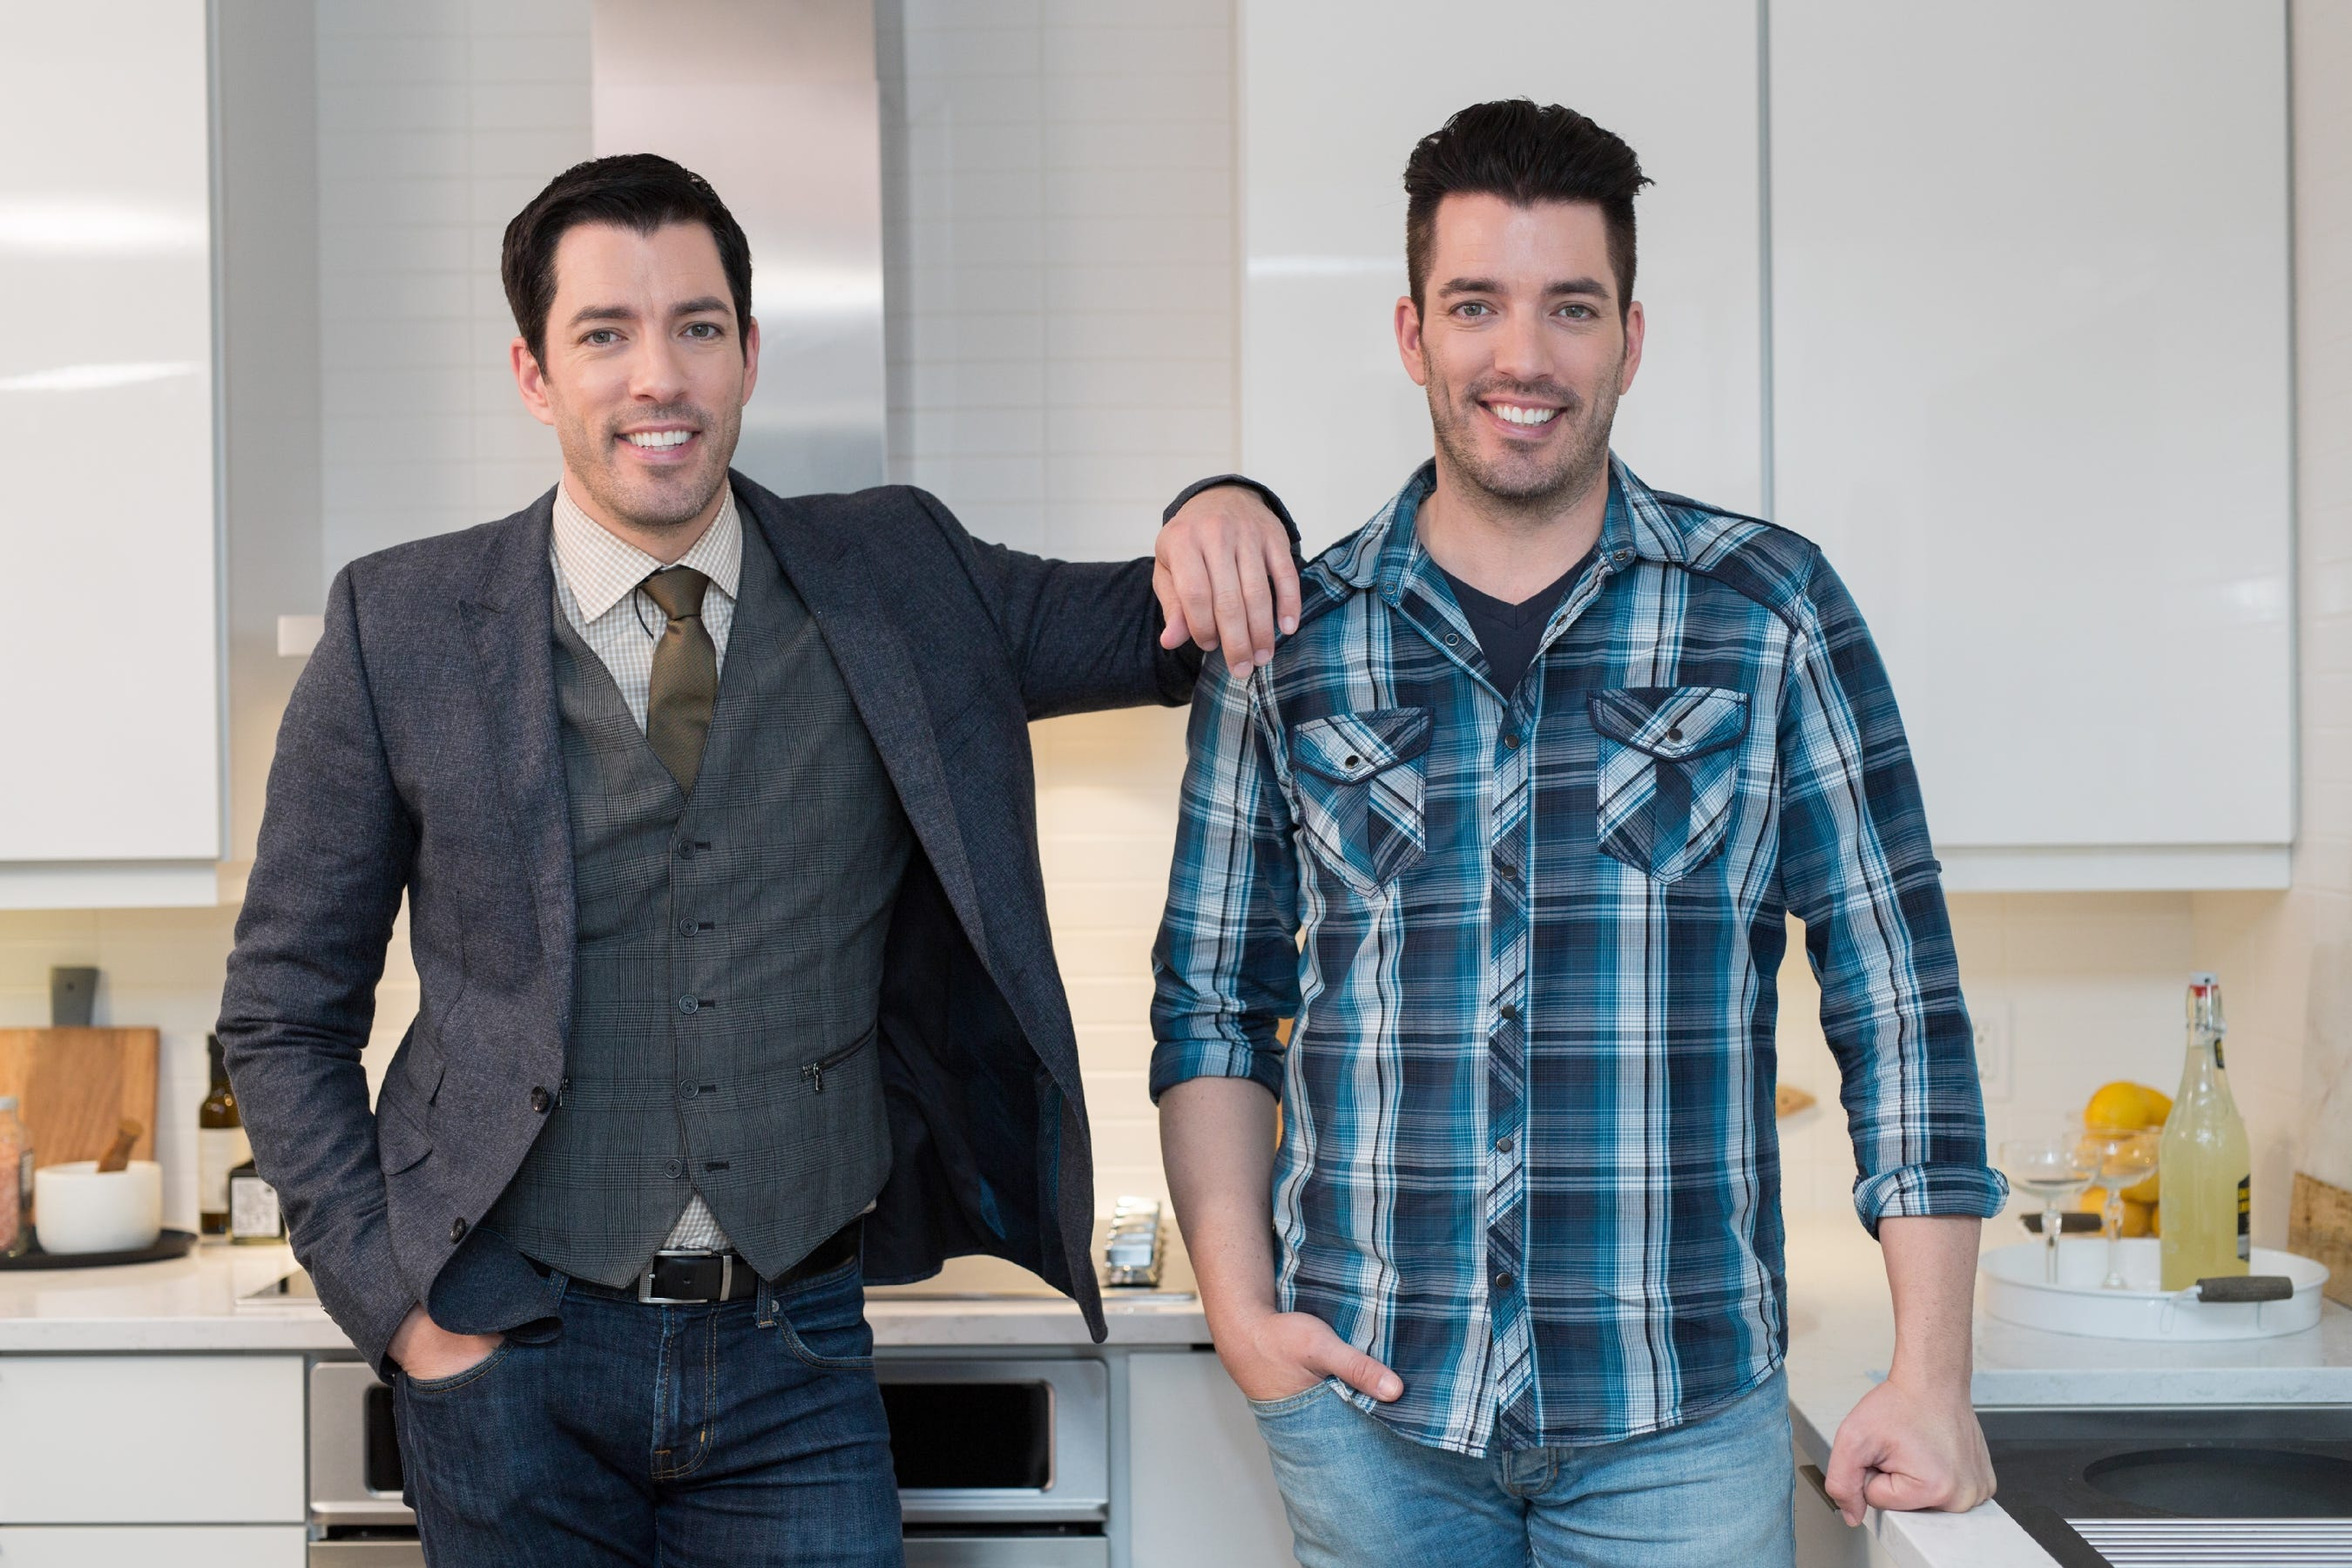 Hgtv property brothers contest